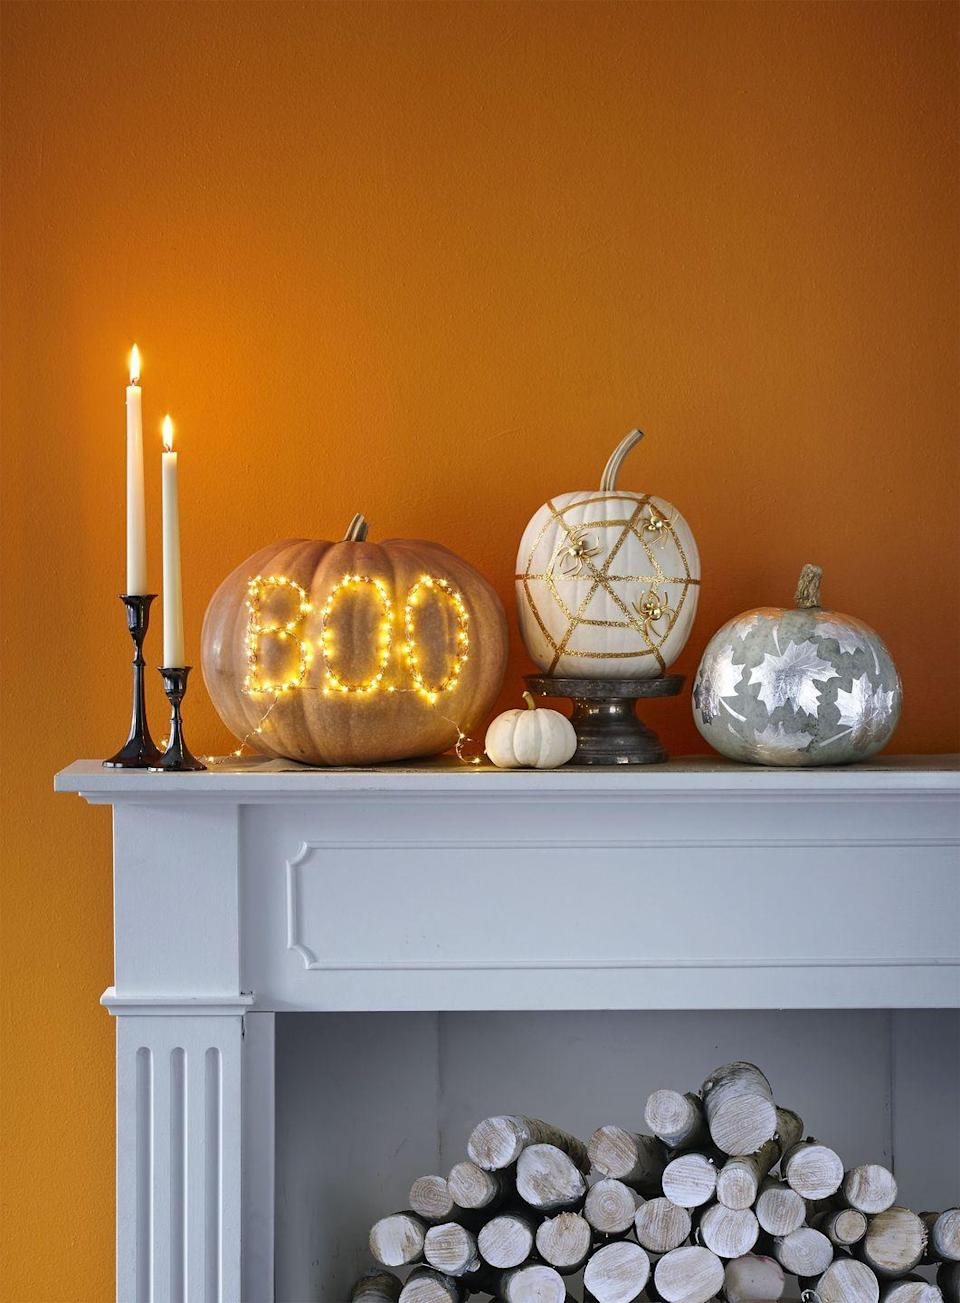 """<p>This shiny design looks great on any pumpkin, but works especially well on a green heirloom pumpkin. Outline several <a href=""""https://www.amazon.com/Maple-Stencils-16x20-11x14-Matboard/dp/B075ZJQG9N?tag=syn-yahoo-20&ascsubtag=%5Bartid%7C10070.g.331%5Bsrc%7Cyahoo-us"""" rel=""""nofollow noopener"""" target=""""_blank"""" data-ylk=""""slk:maple leaves"""" class=""""link rapid-noclick-resp"""">maple leaves</a> onto Fanci-Foil wrap and cut them out. Then use Mod Podge to adhere them to the pumpkin. To get the realistic leaf look, use a toothpick to draw on veins while the leaves are still drying.</p><p><a class=""""link rapid-noclick-resp"""" href=""""https://www.amazon.com/Wilton-804-123-Silver-Decorative-15-Feet/dp/B00BBBS7FM/?tag=syn-yahoo-20&ascsubtag=%5Bartid%7C10070.g.331%5Bsrc%7Cyahoo-us"""" rel=""""nofollow noopener"""" target=""""_blank"""" data-ylk=""""slk:SHOP FANCI-FOIL"""">SHOP FANCI-FOIL</a></p>"""